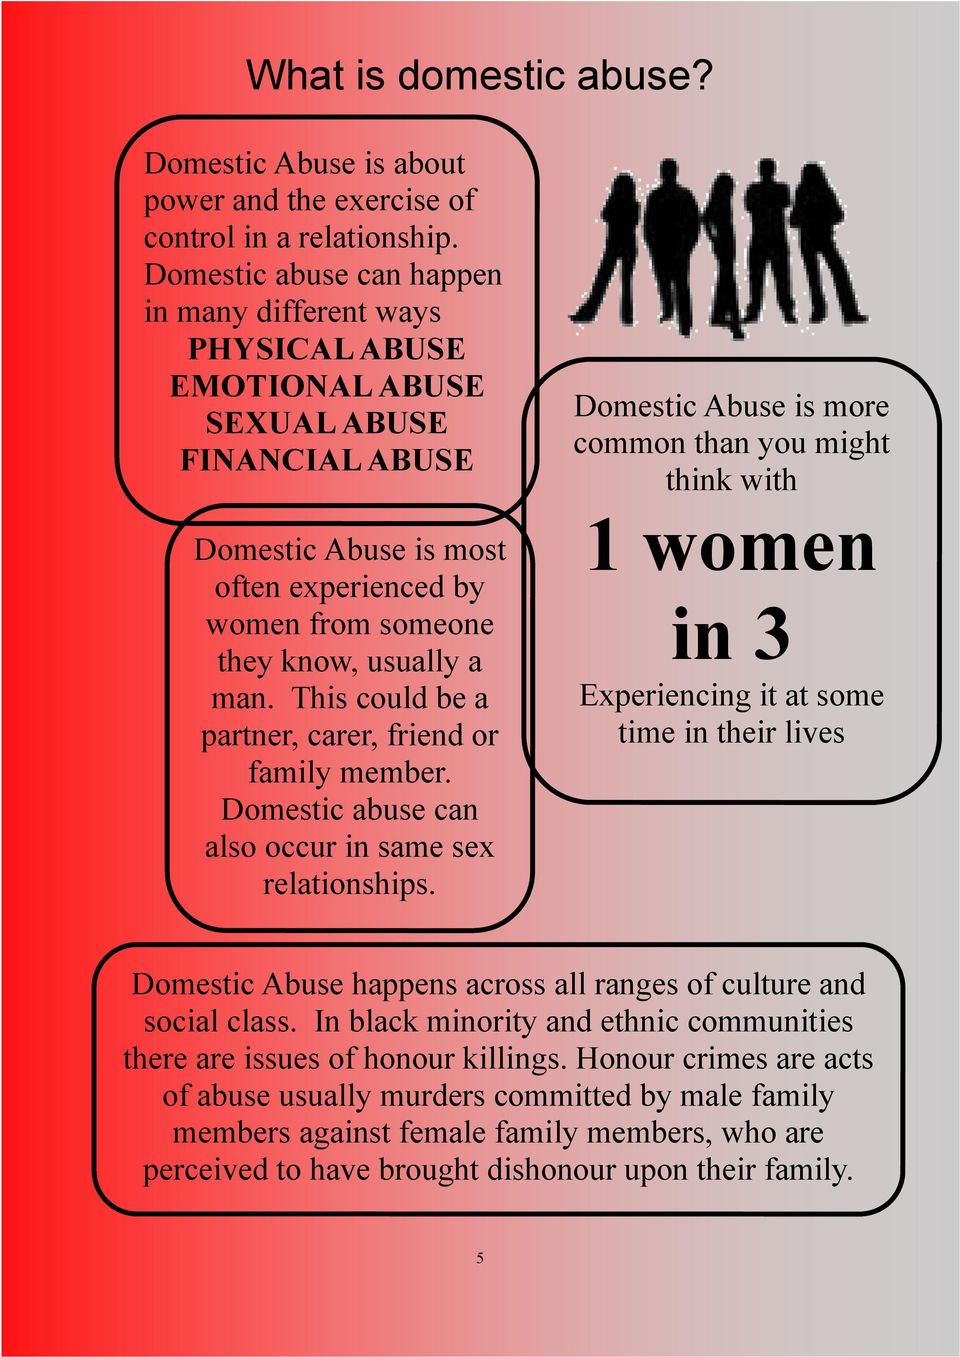 This could be a partner, carer, friend or family member. Domestic abuse can also occur in same sex relationships.